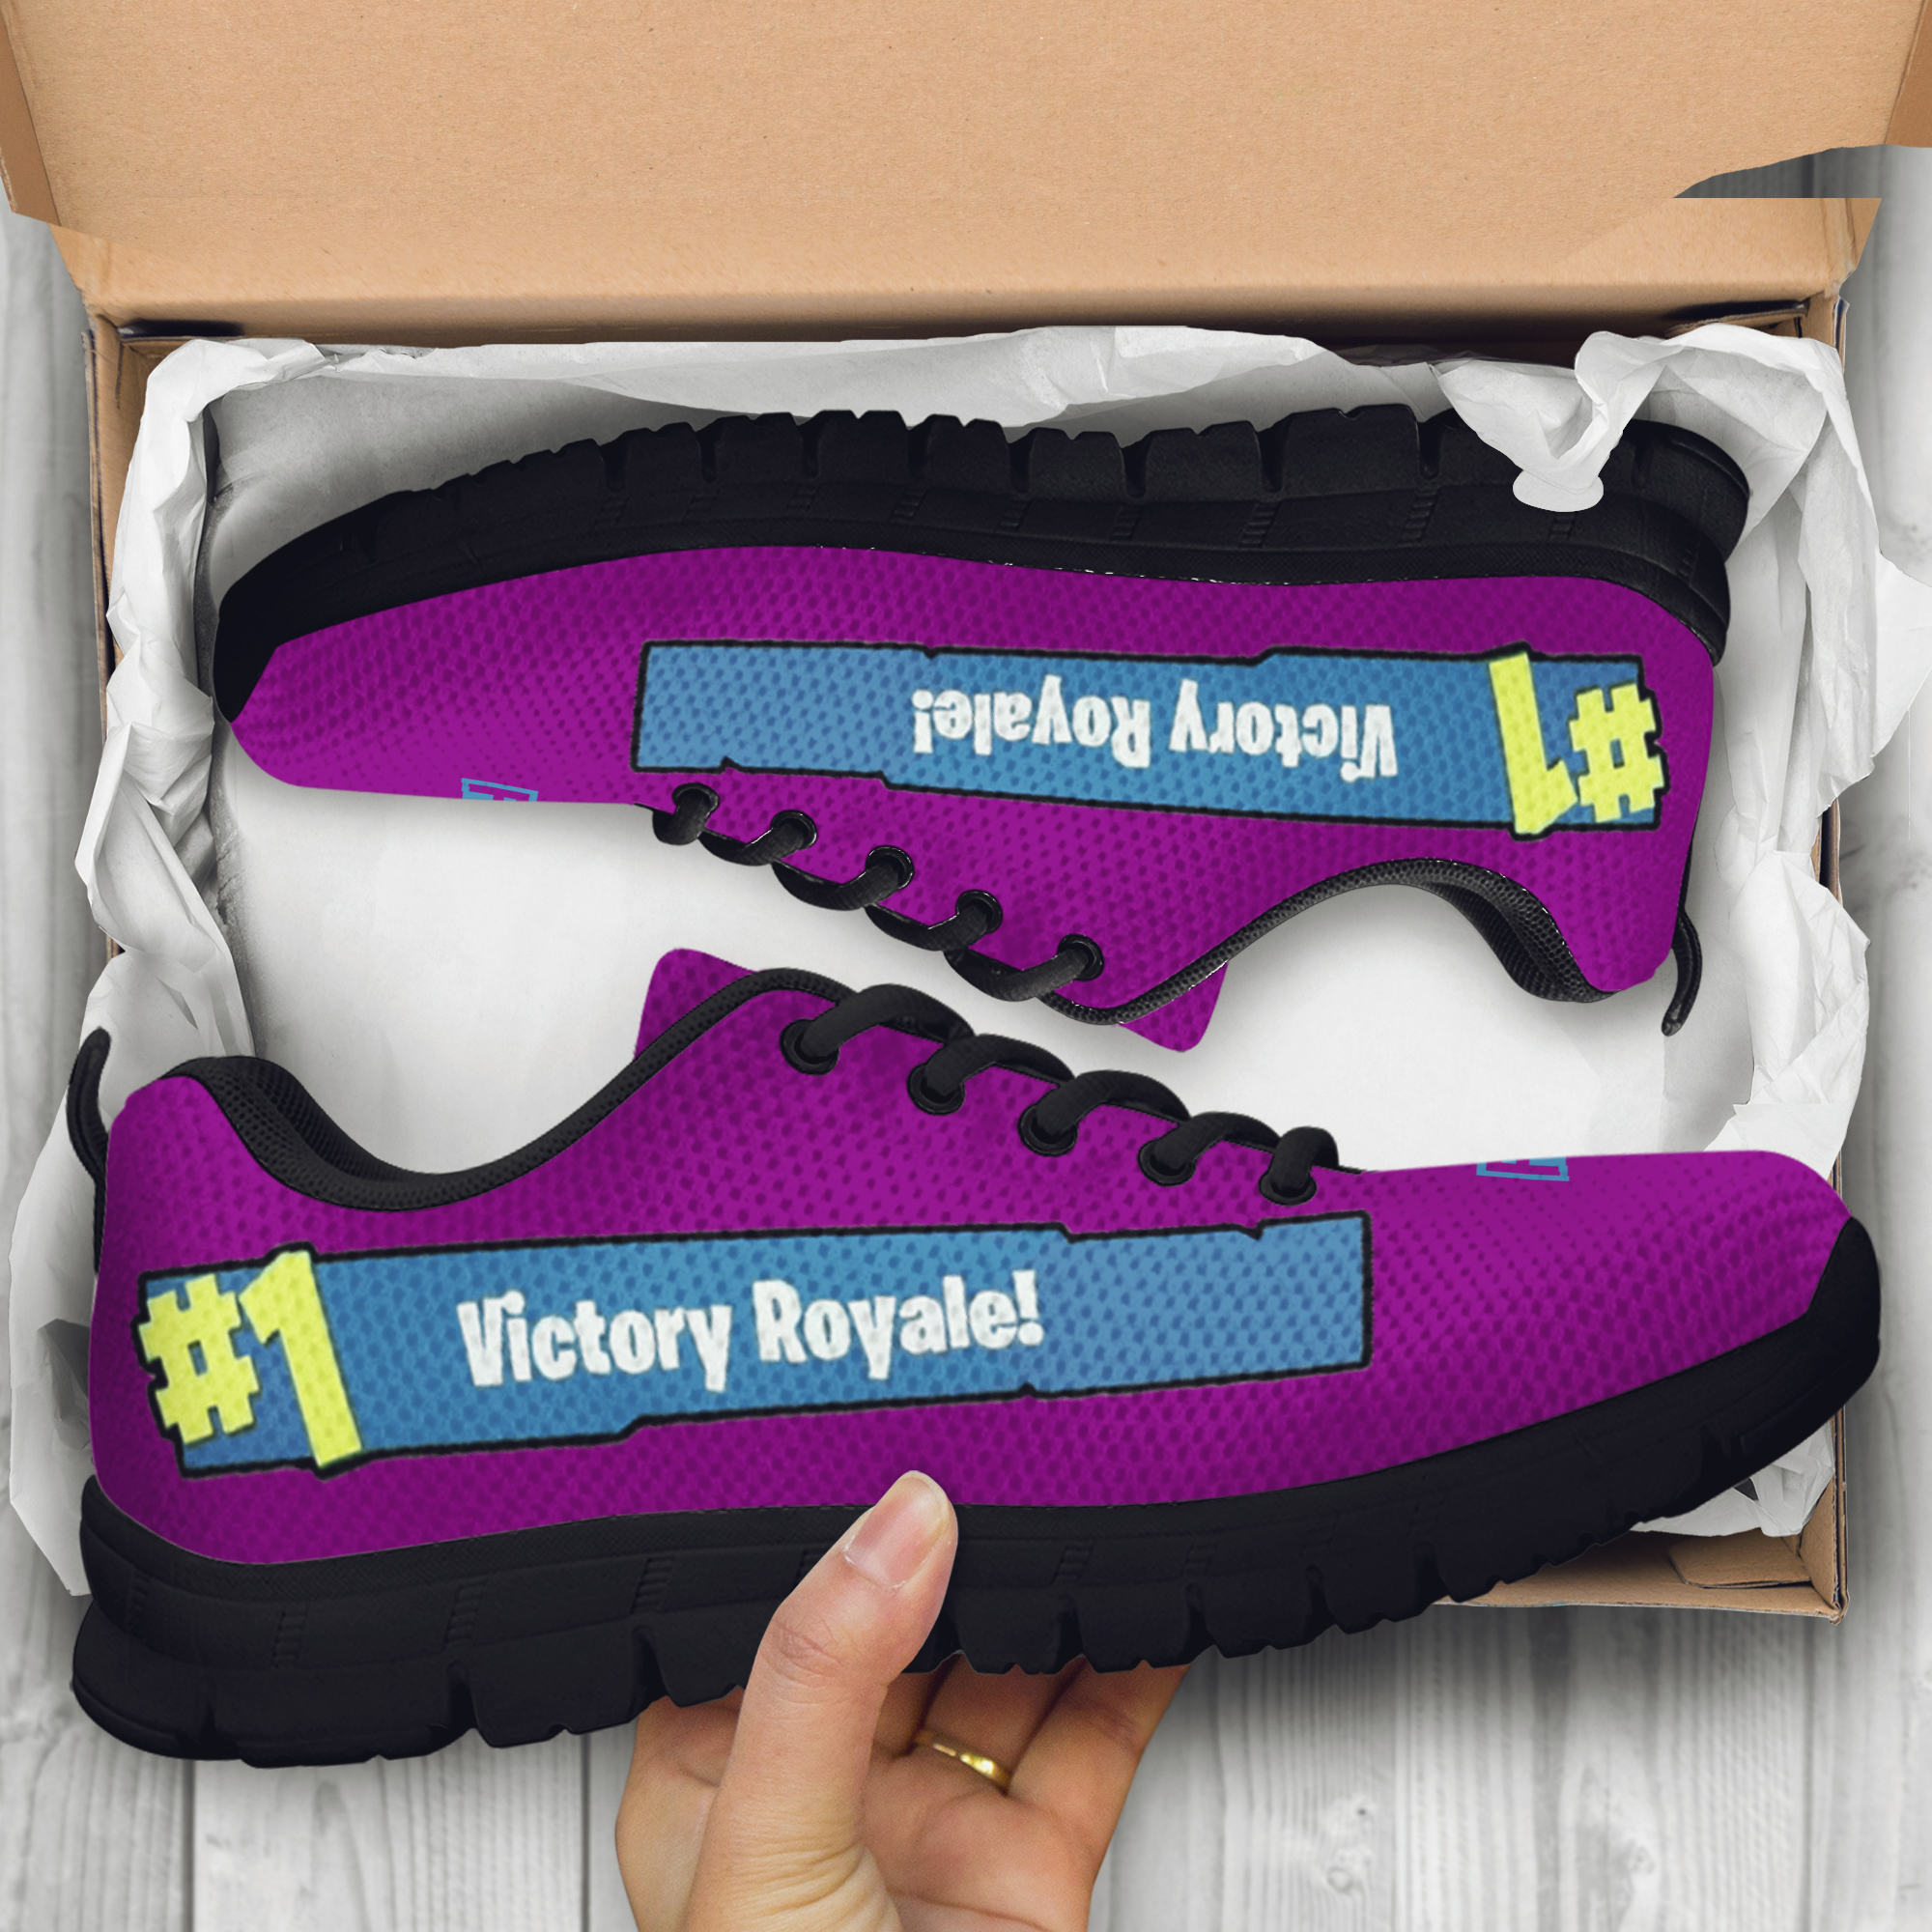 69c5b708b7641 Fortnite Battle Royale Custom Shoes/sneakers/trainers - ladies, Mens, Kids  sizes Fan, Collector, Fortnite Birthday Gift